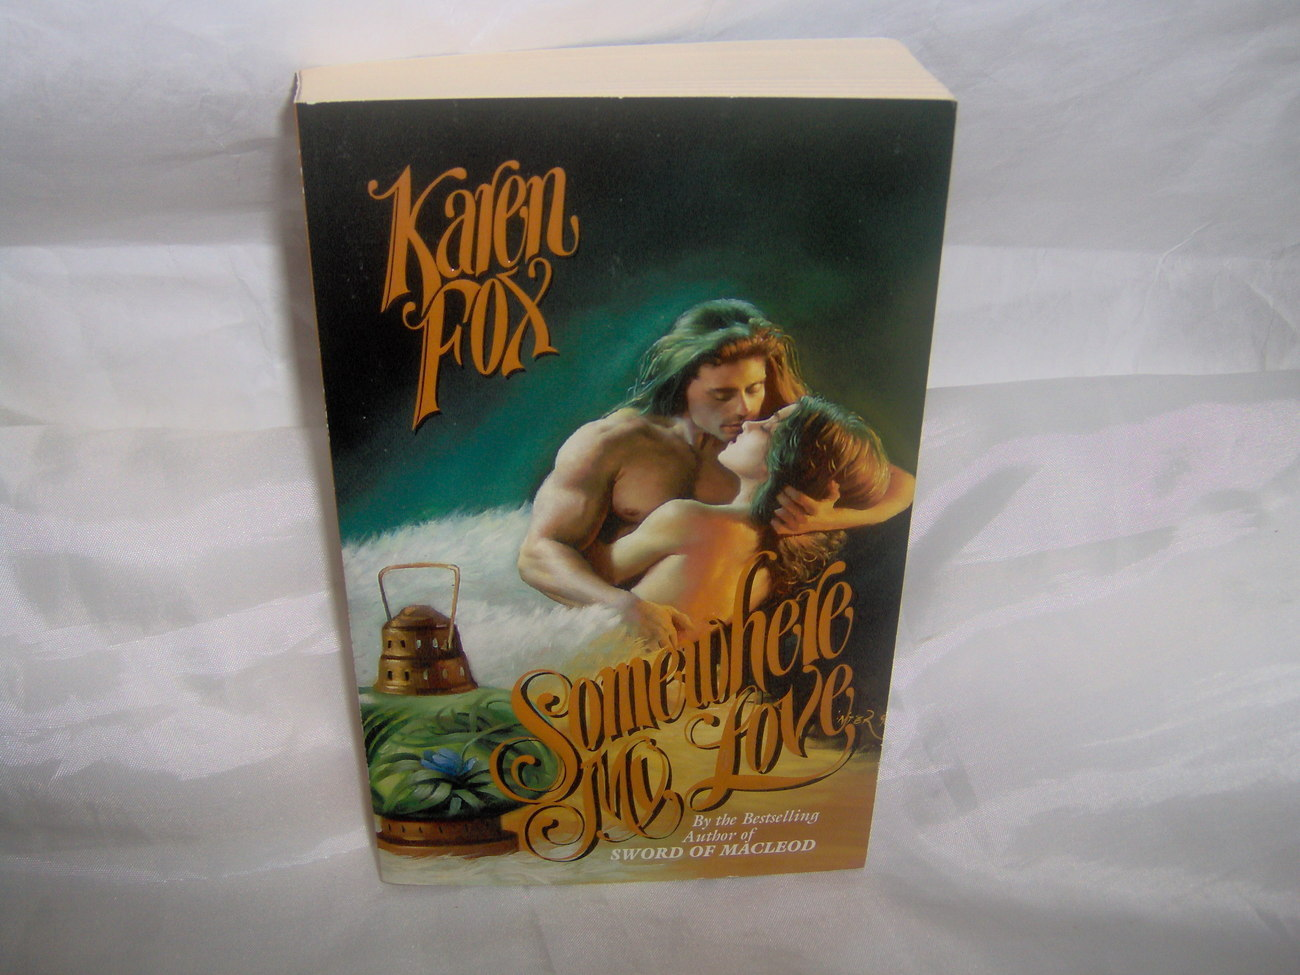 Somewhere My Love by Karen Fox